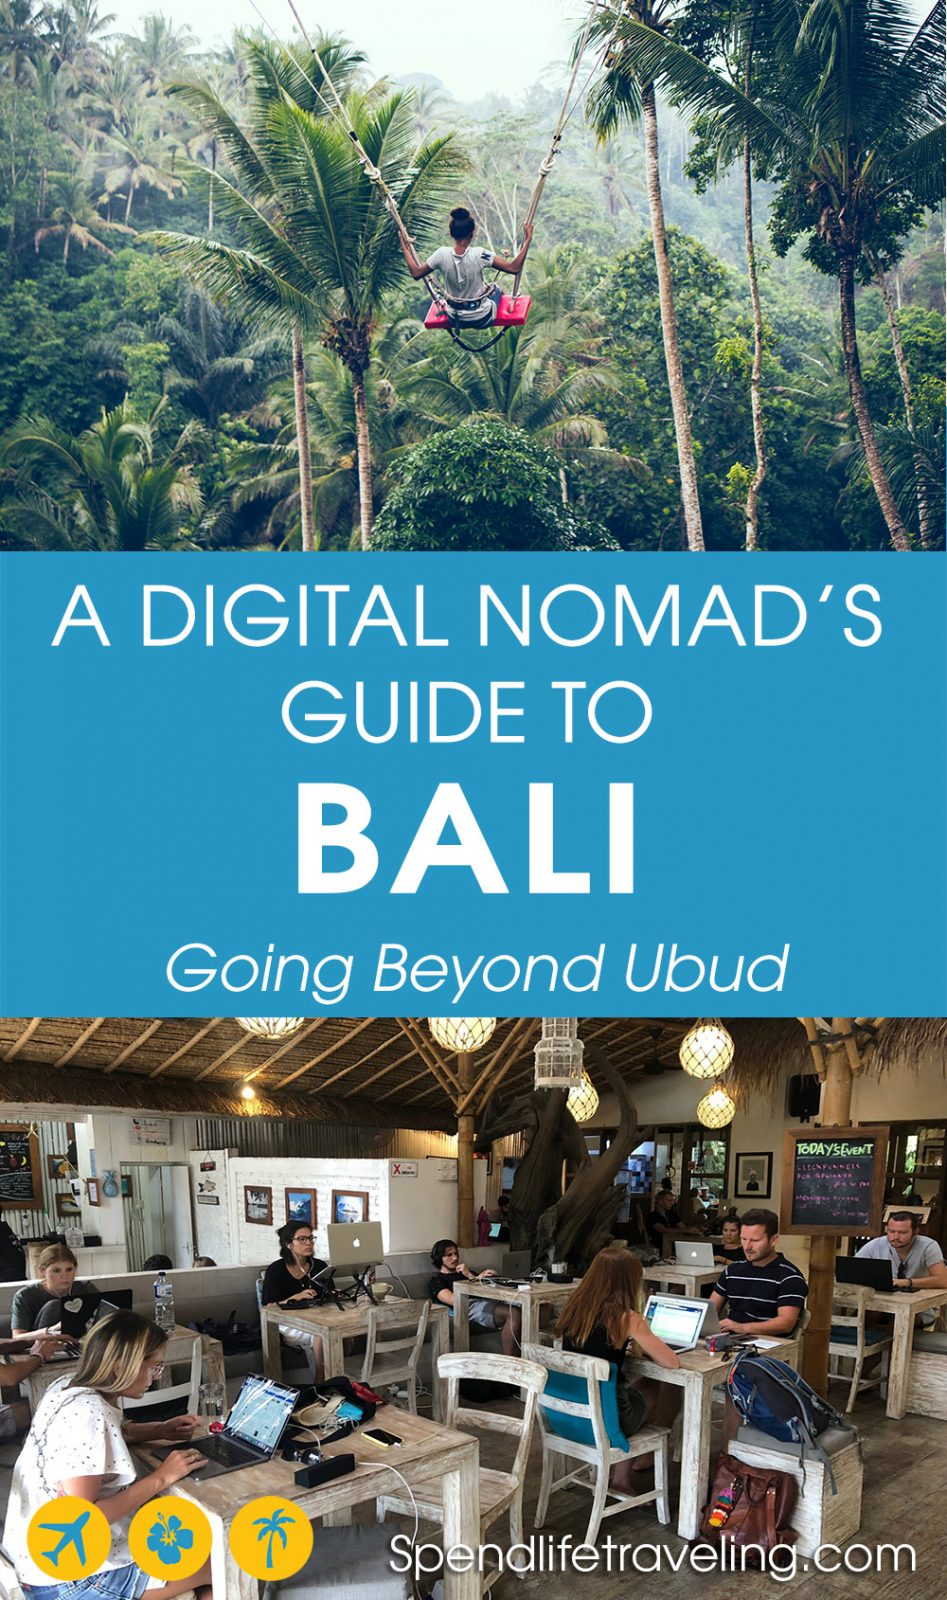 Bali is one of the most popular destinations for digital nomads. Why? Check out this article to learn more about what to do and where to go when traveling to Bali as a digital nomad.